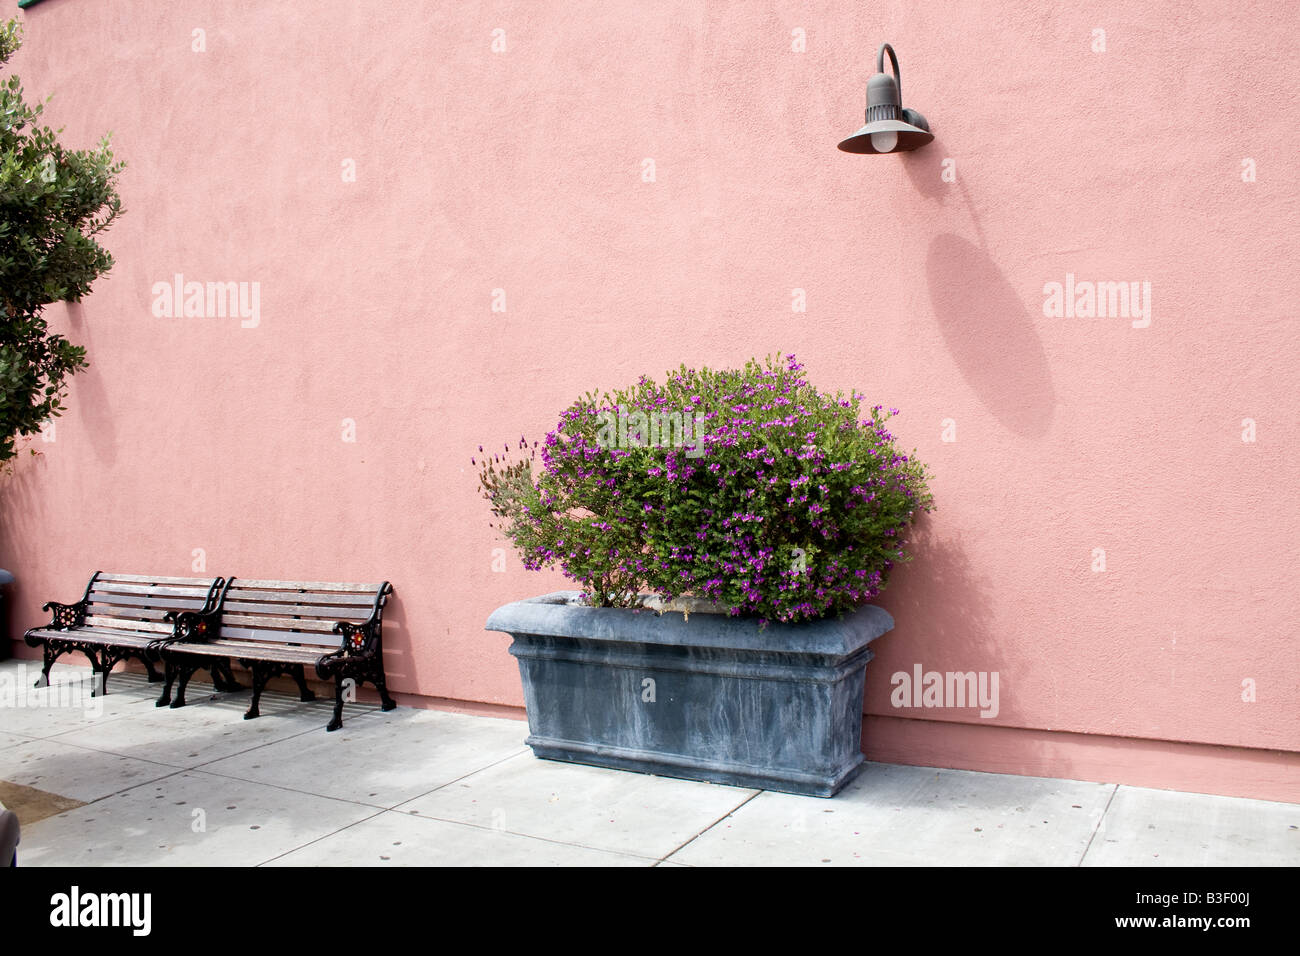 Peachy Small Bush In A Planter Underneath A Light Next To A Bench Pabps2019 Chair Design Images Pabps2019Com